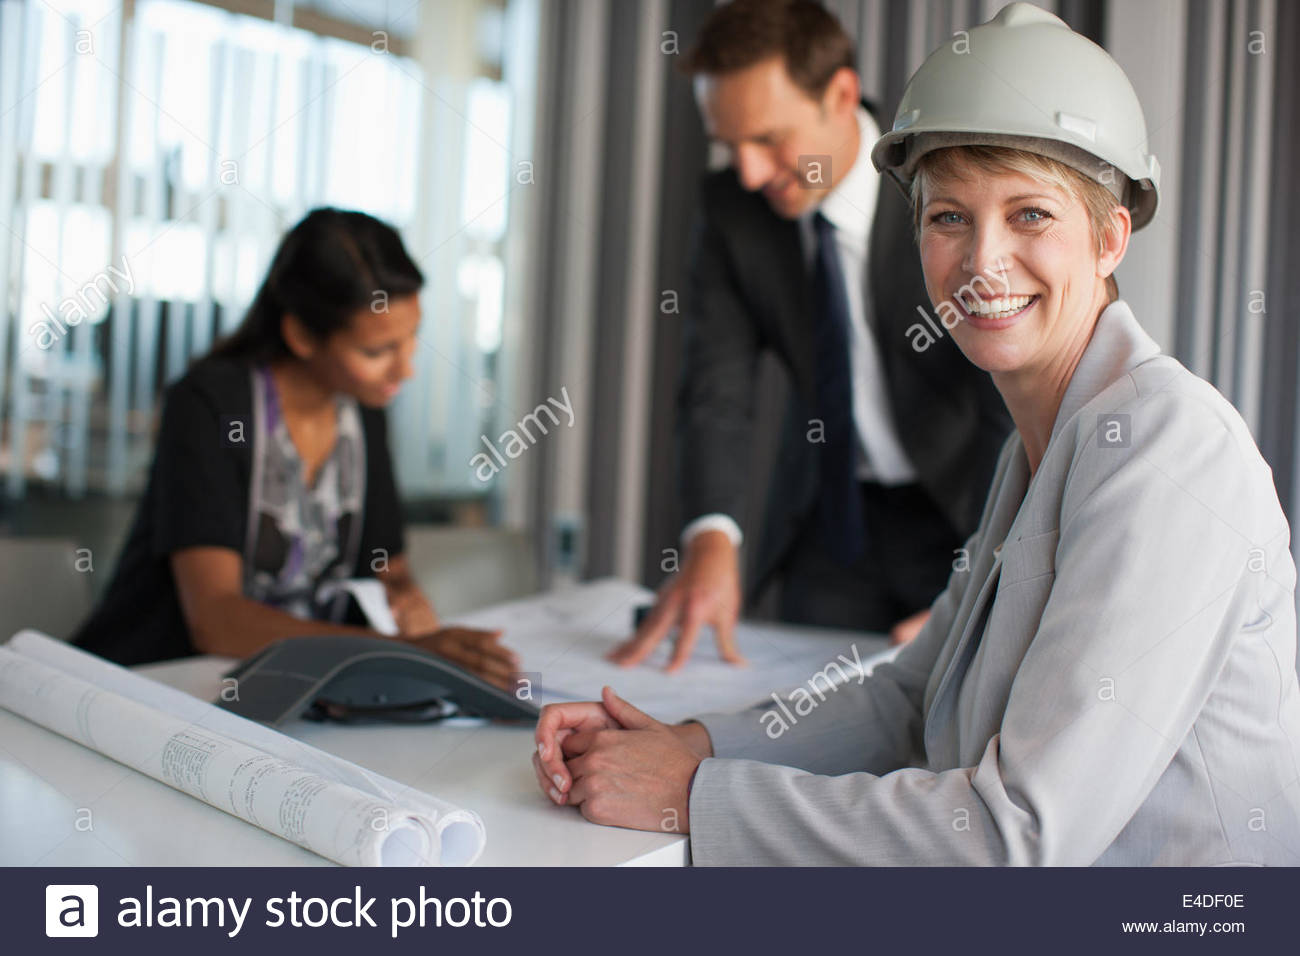 Businesswoman in conference room with blueprints - Stock Image